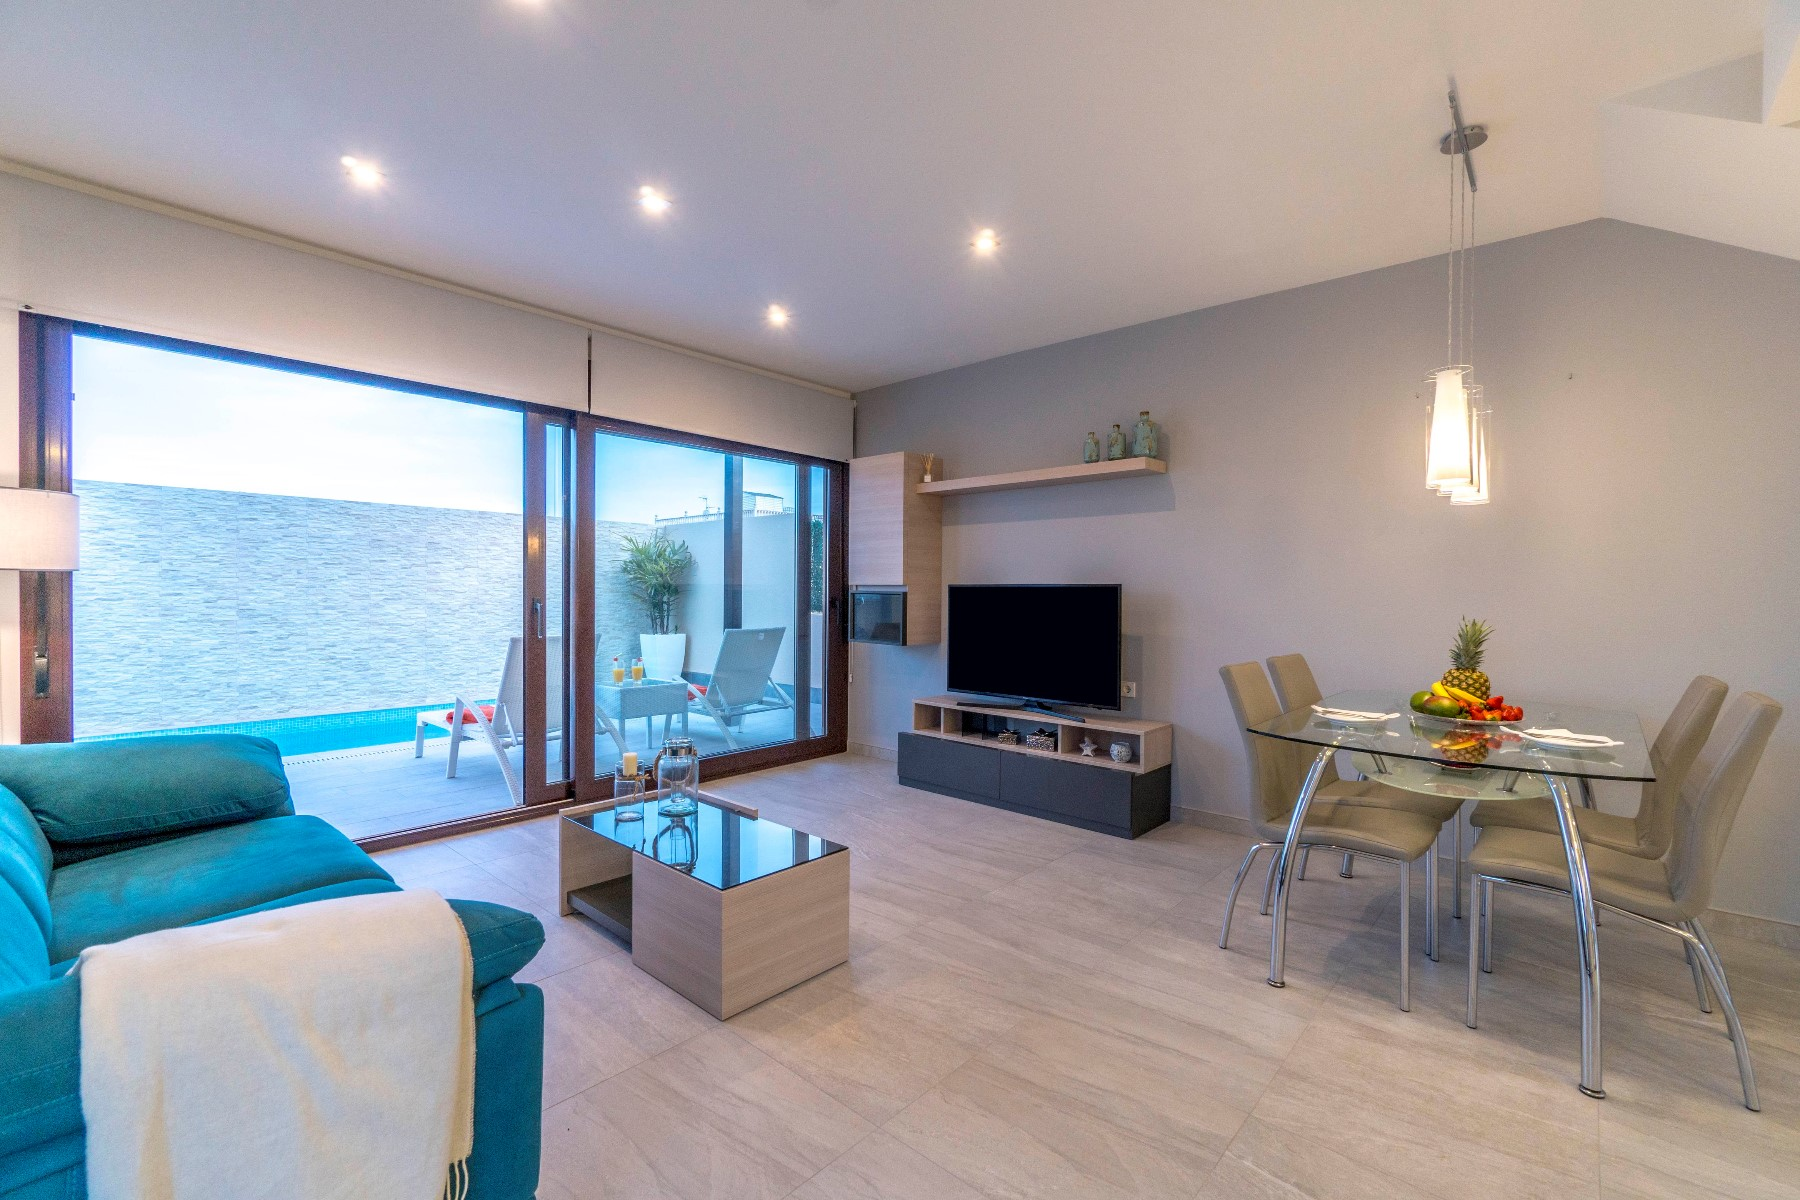 3 bed Townhouse in San Pedro del Pinatar image 2